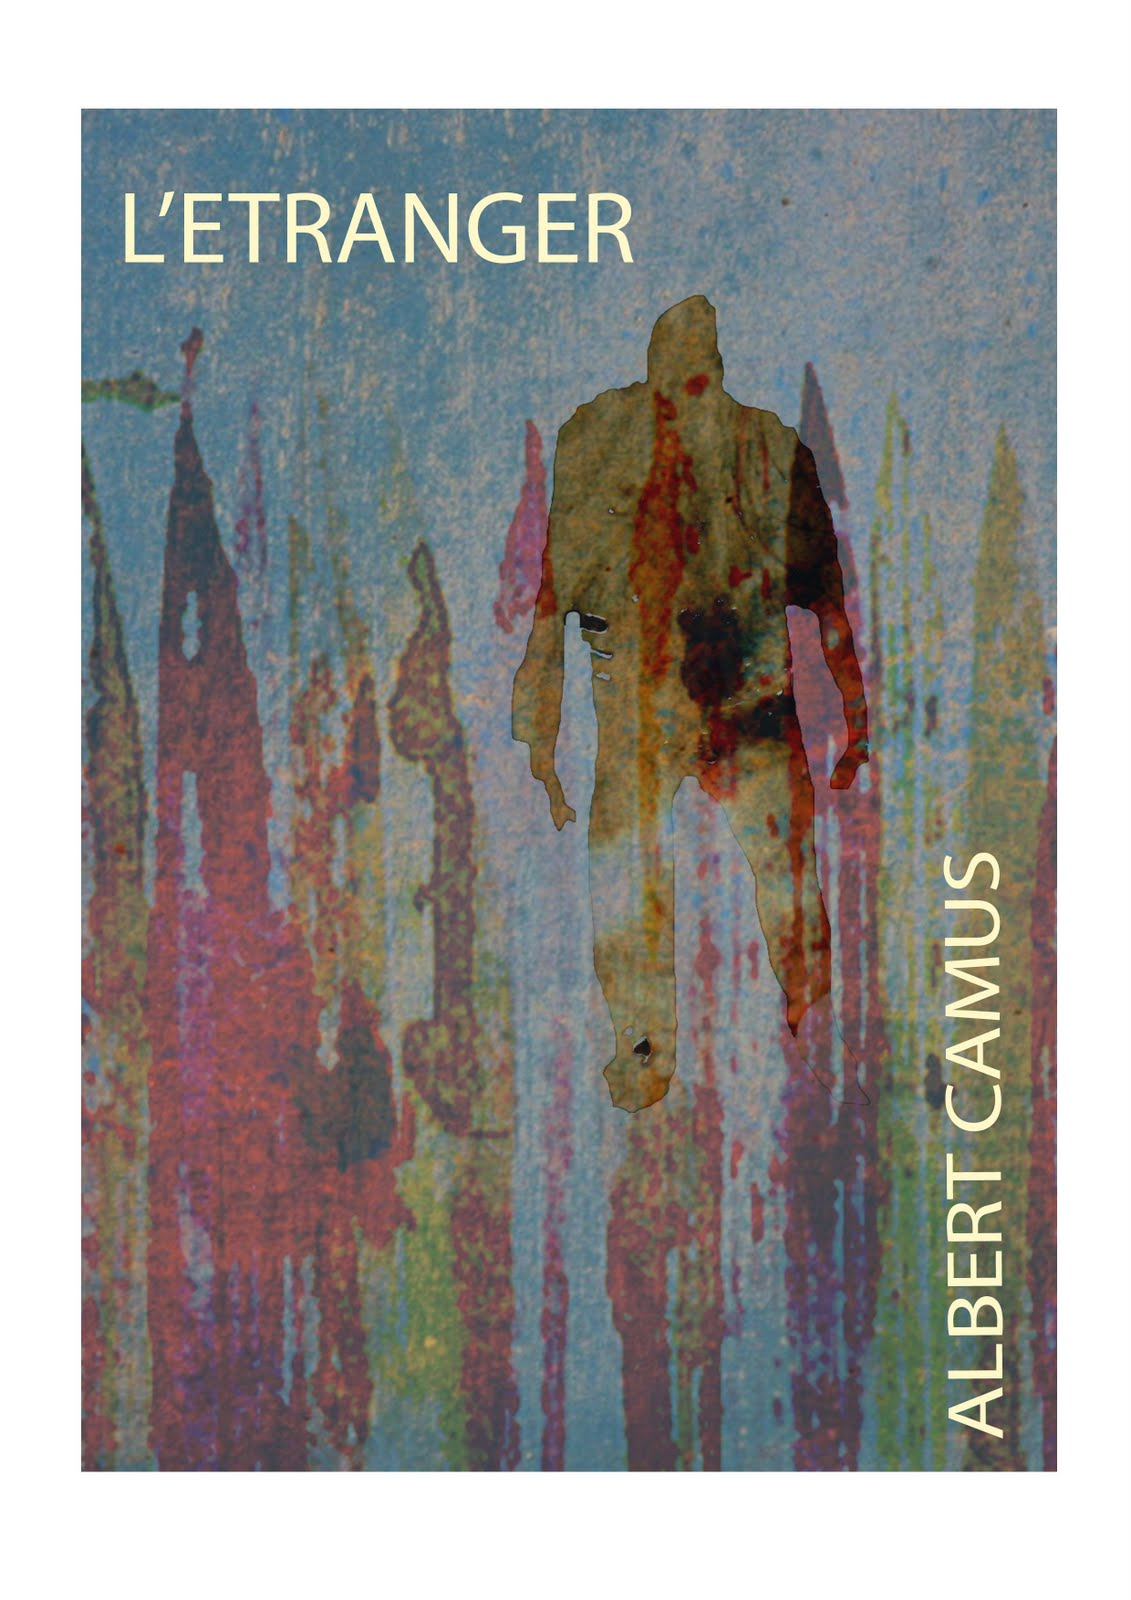 existentialism in the stranger essays 91 121 113 106 existentialism in the stranger essays